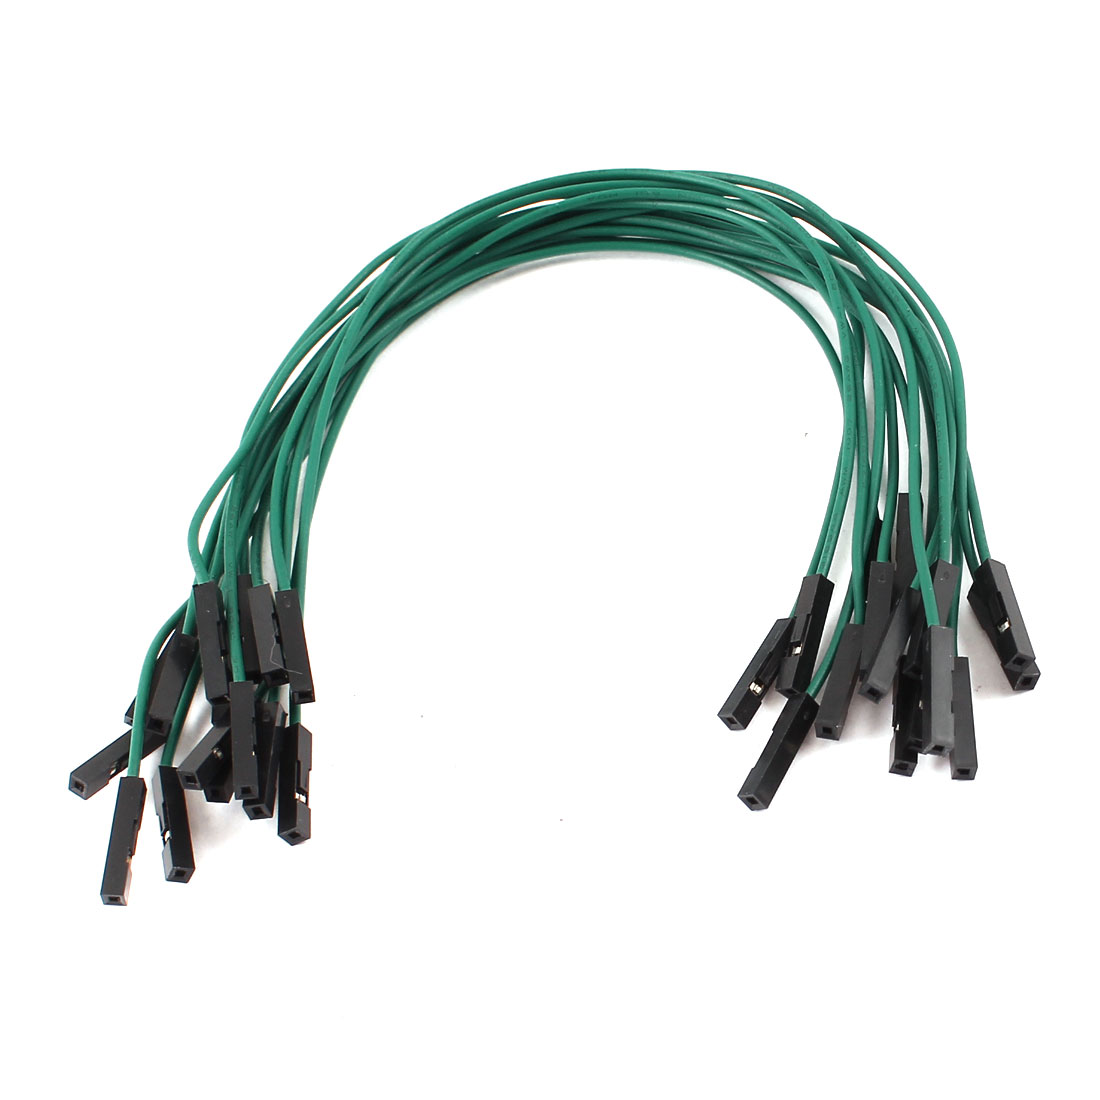 15 Pcs 20cm Length Double Head 1pin Female Jack Connector Jumper Cable Green